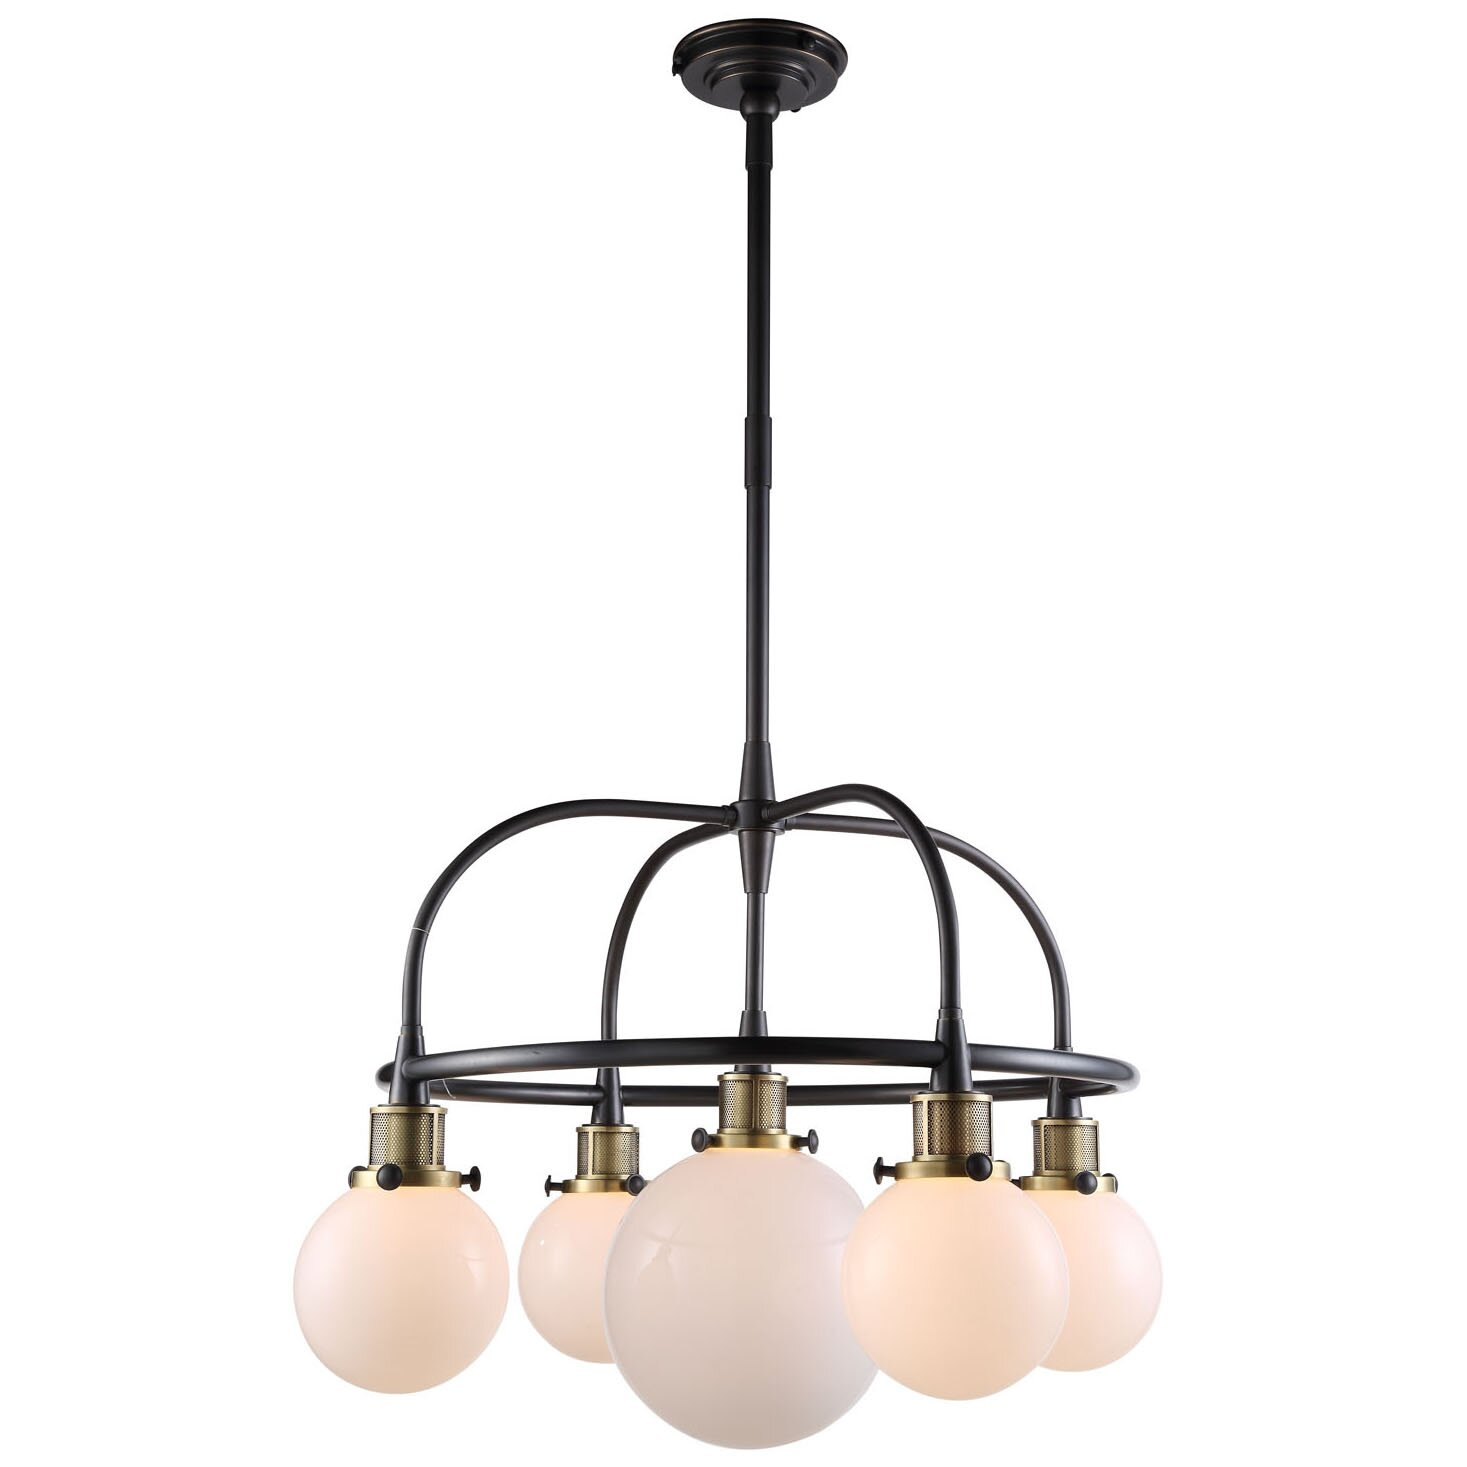 Elegant lighting santos 5 light kitchen island pendant for 5 lamp kitchen light